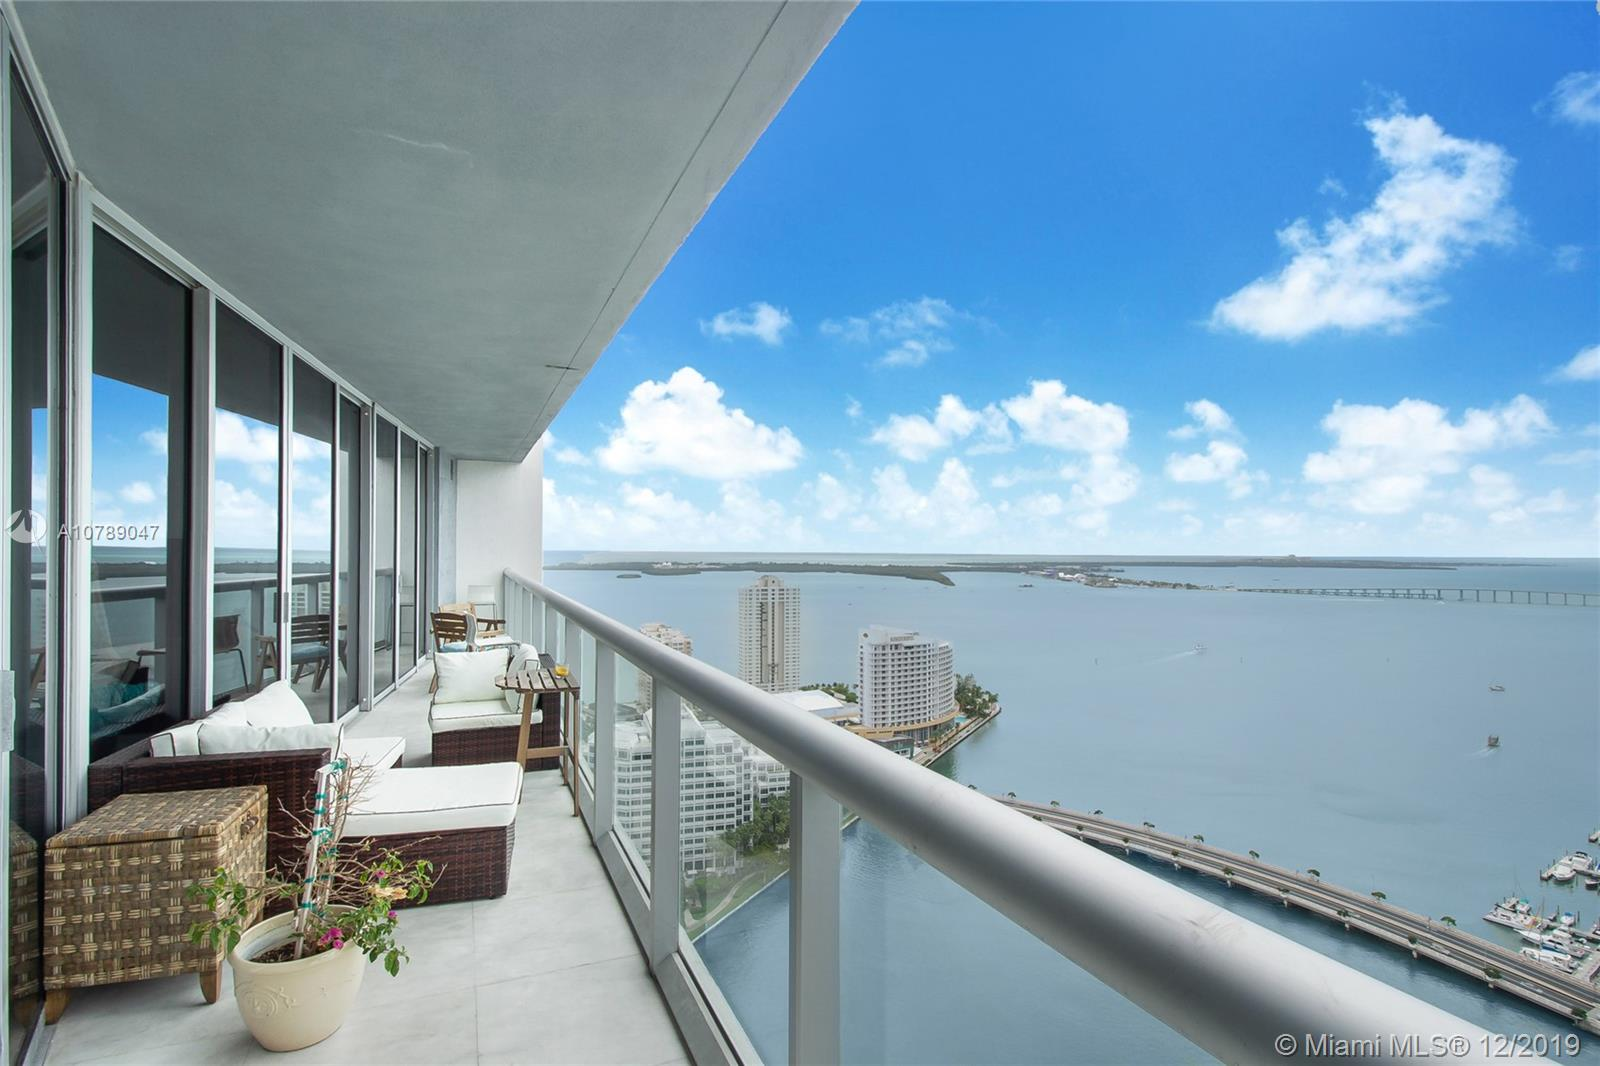 495  Brickell Ave #3803 For Sale A10789047, FL